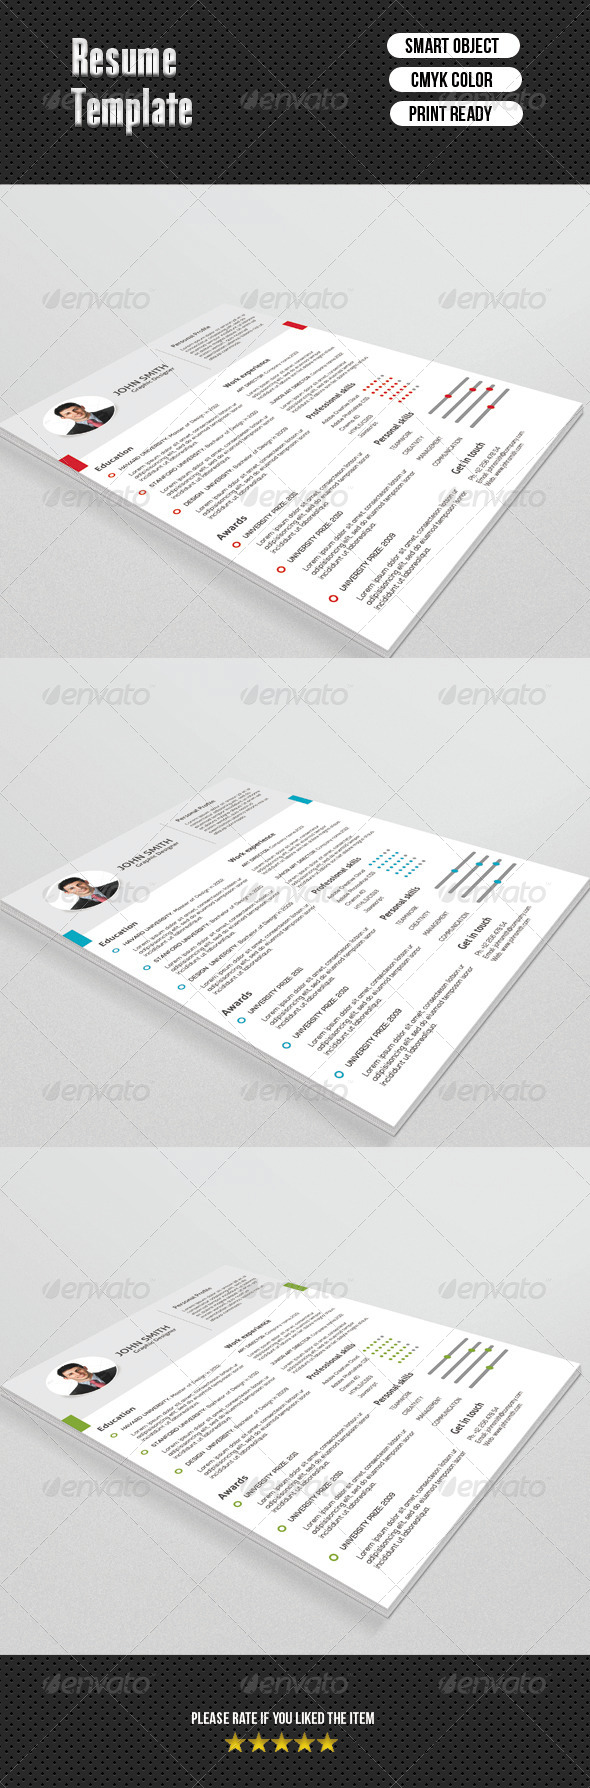 GraphicRiver Fresh Resume Template 6668176